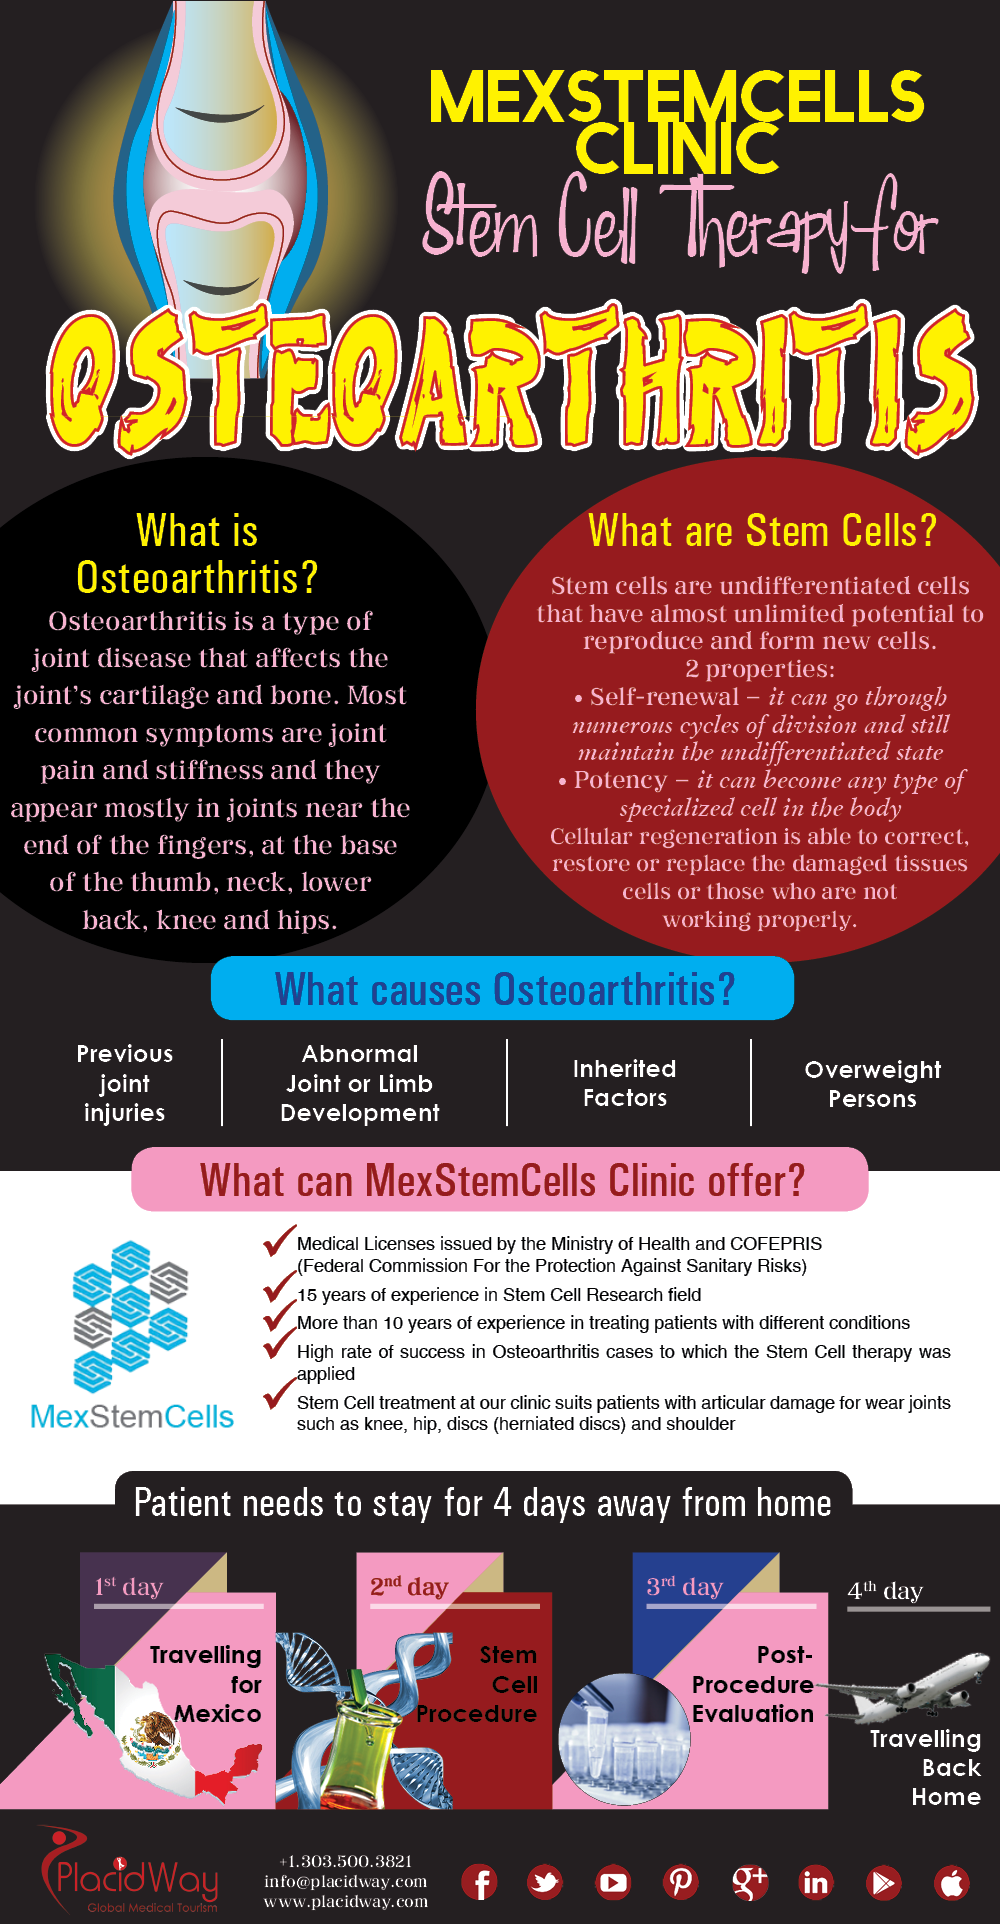 Infographics: MexStemCells Clinic Stem Cell Therapy for Orthopedic Diseases